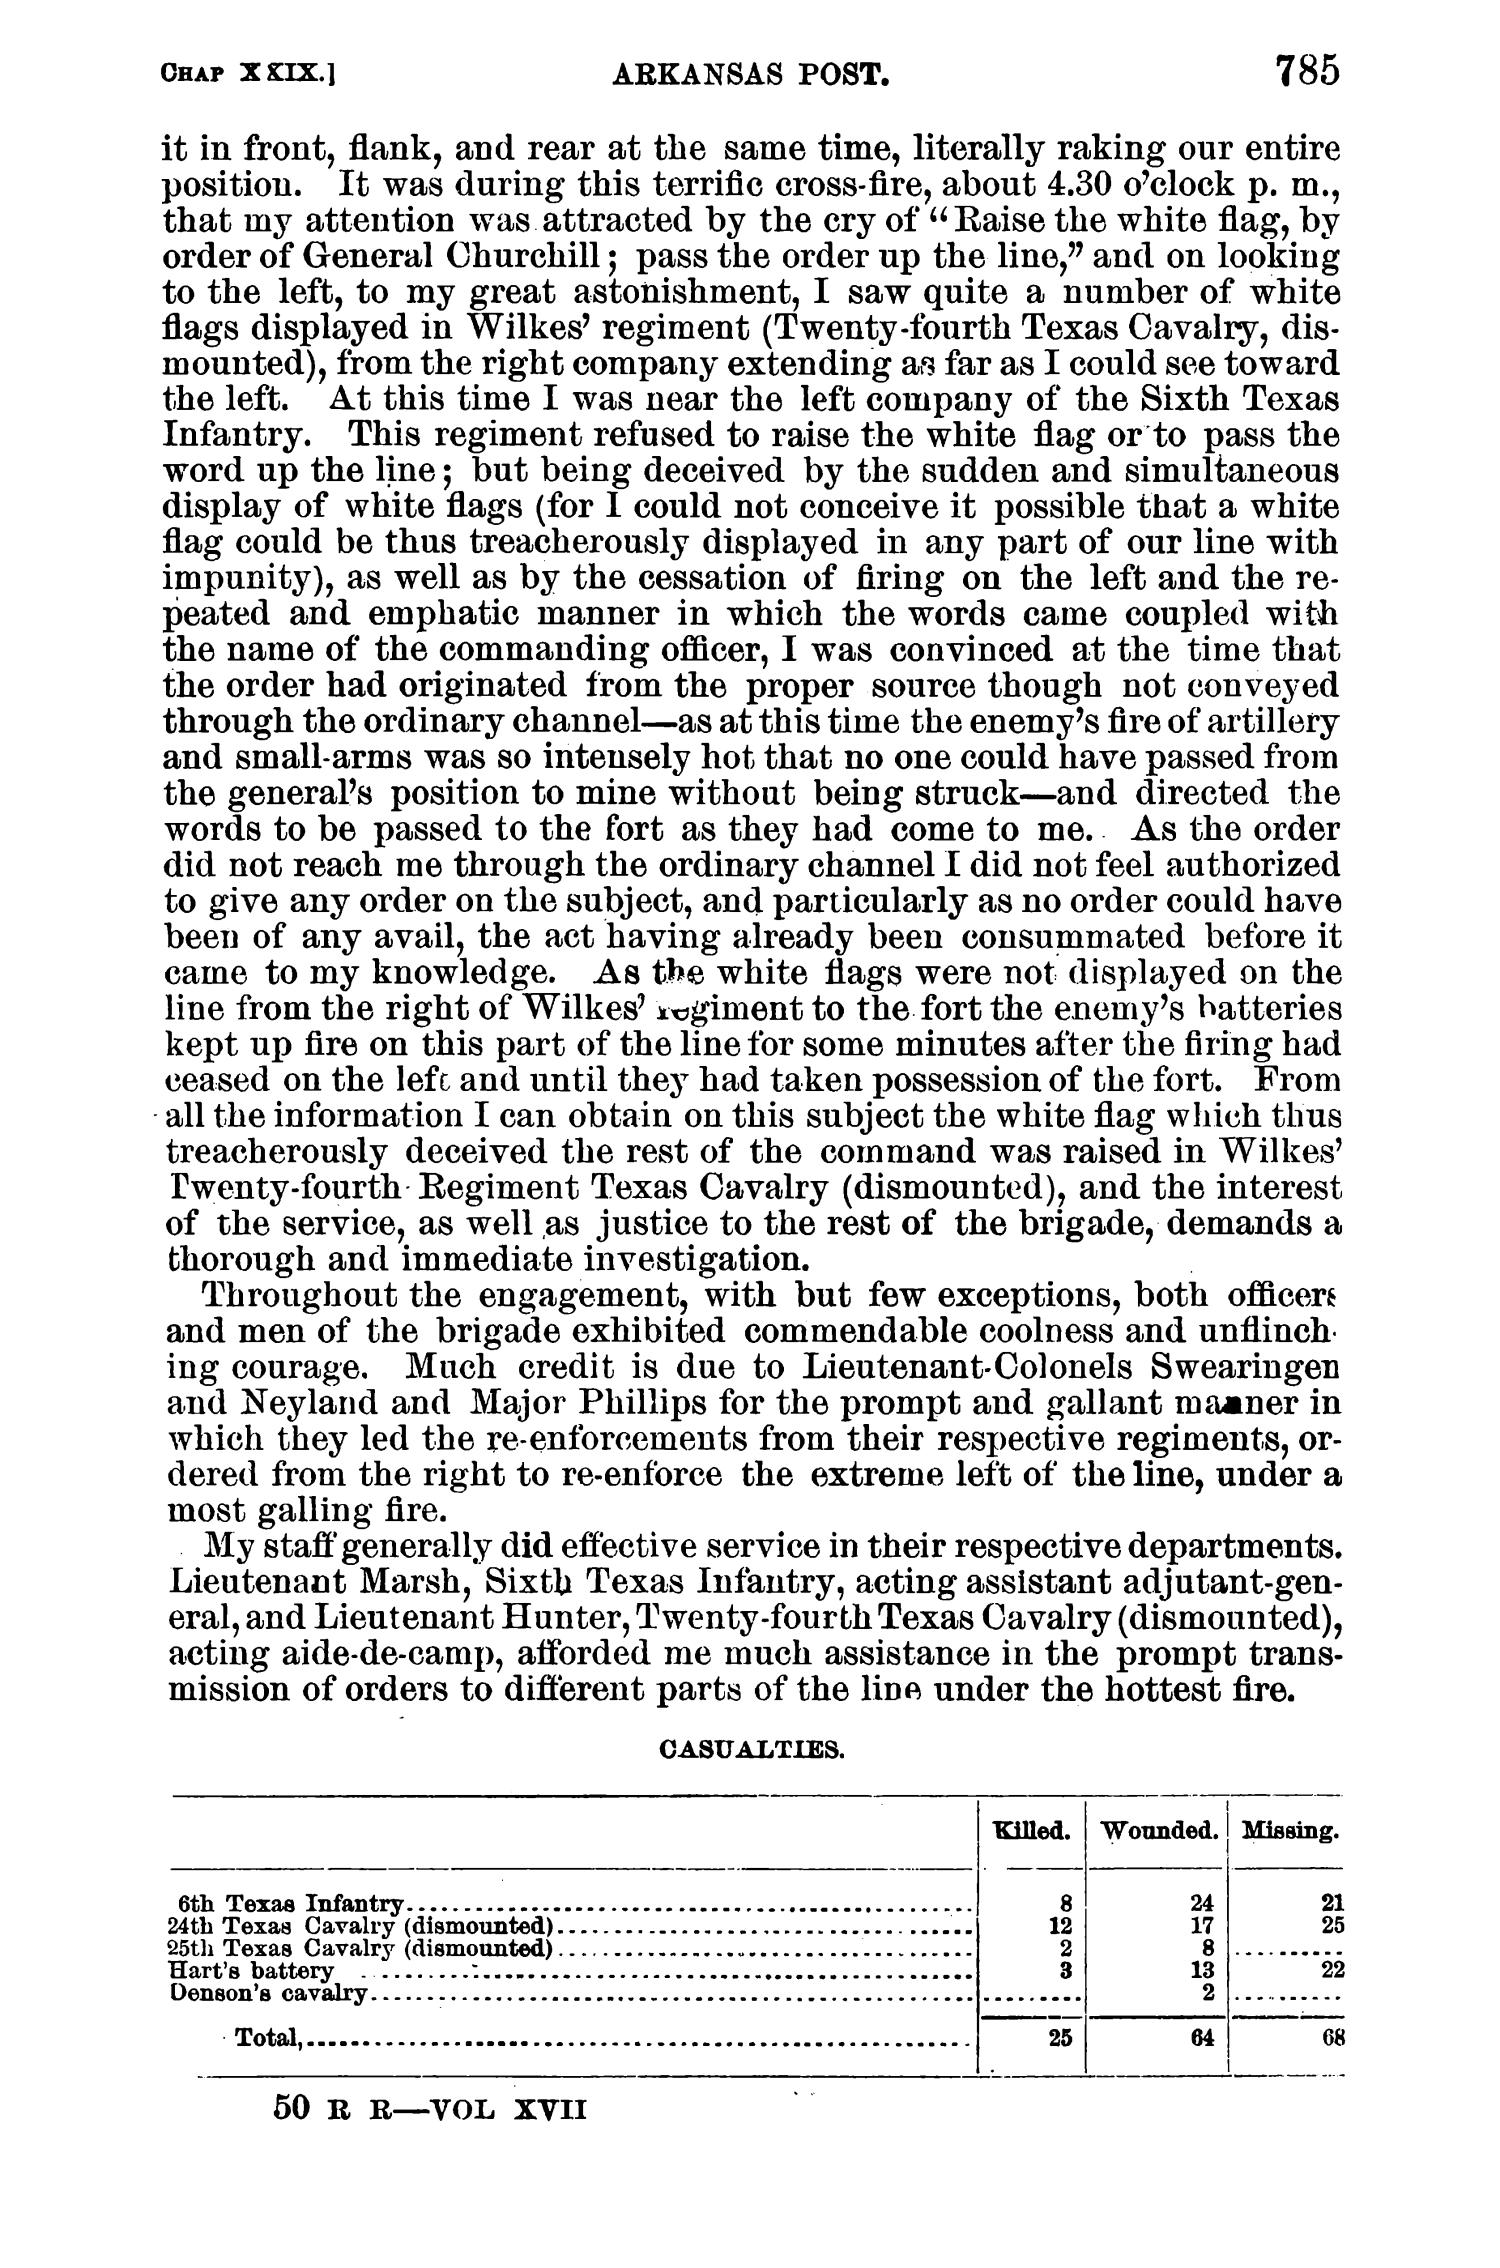 The War of the Rebellion: A Compilation of the Official Records of the Union And Confederate Armies. Series 1, Volume 17, In Two Parts. Part 1, Reports.                                                                                                      785